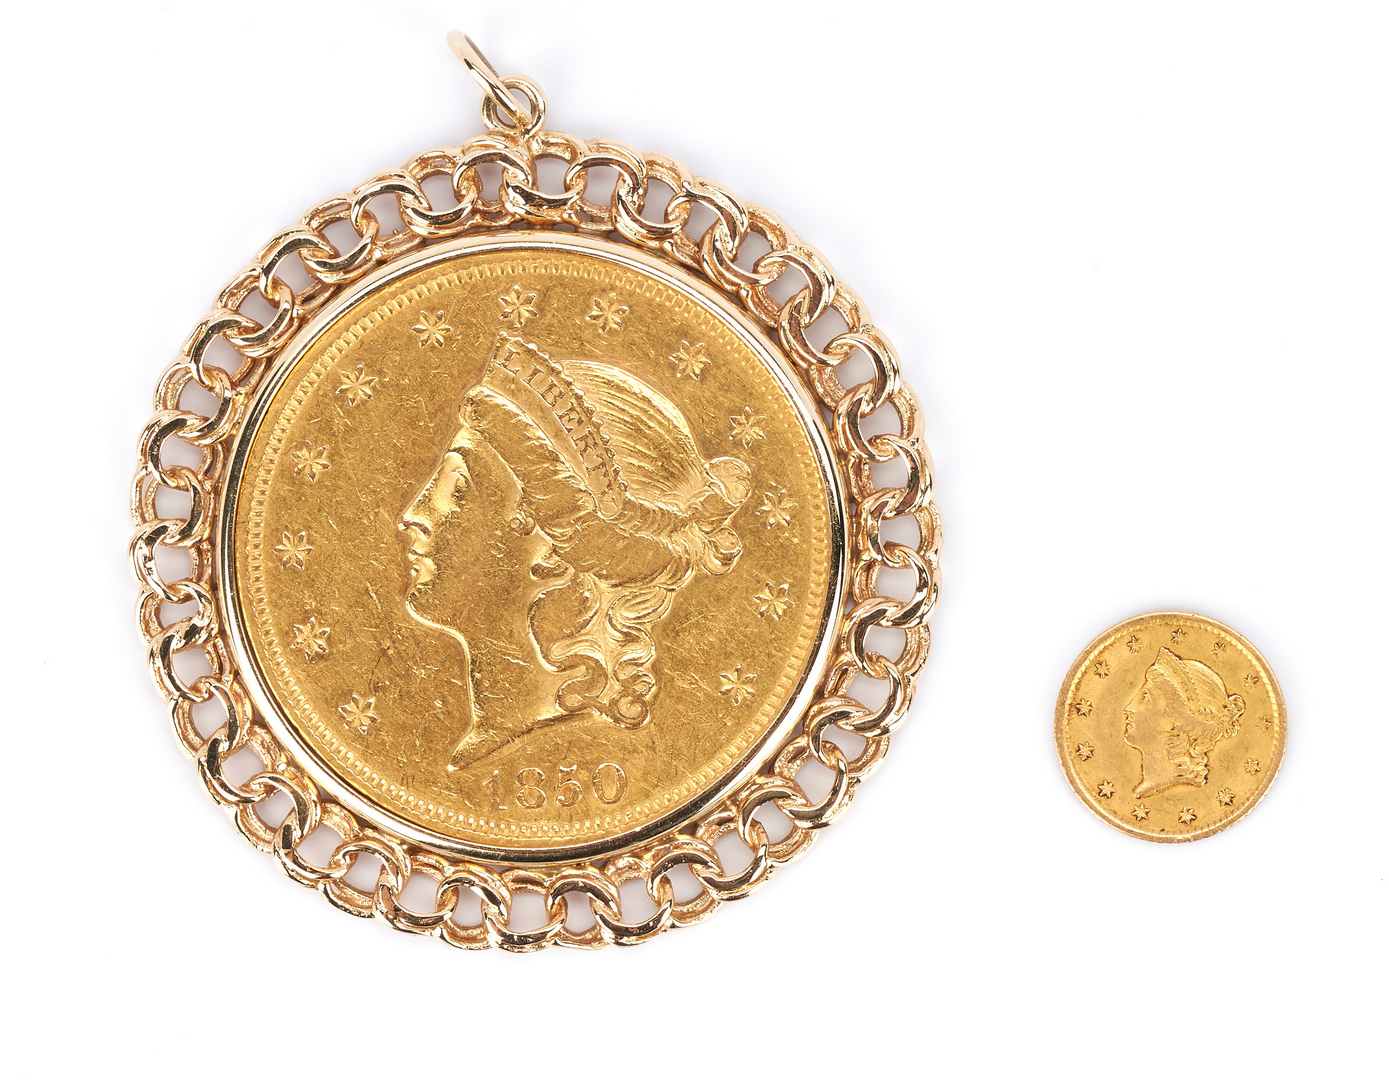 Lot 757: 1850 $20 Gold piece, Mounted, plus 1851 $1 Liberty Head